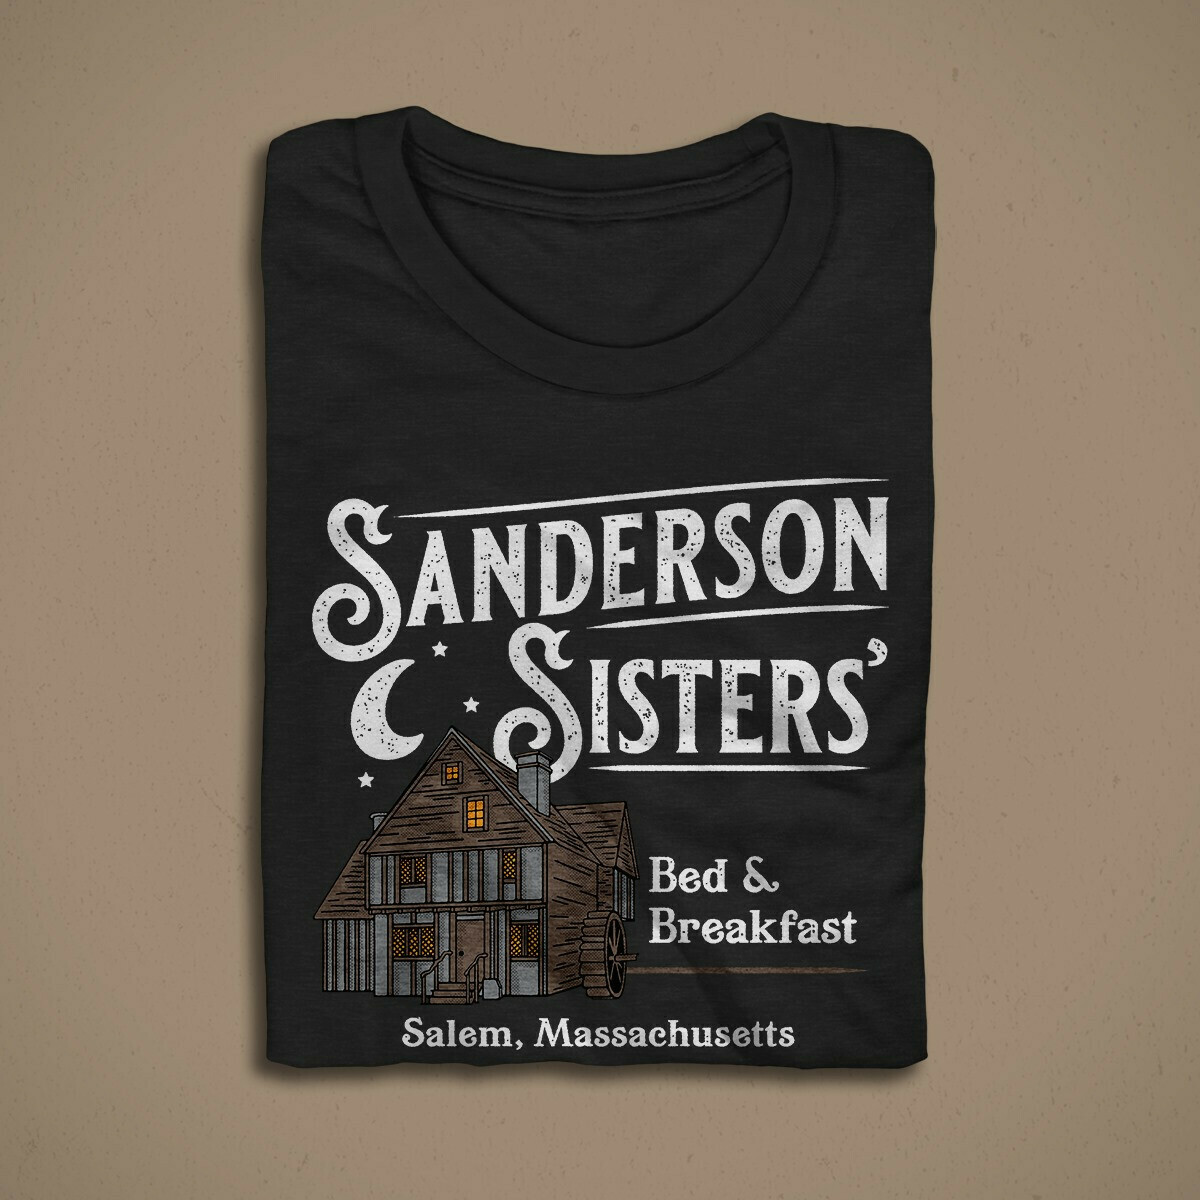 SANDERSON SISTERS' BED & BREAKFAST MEN/UNISEX T-SHIRT